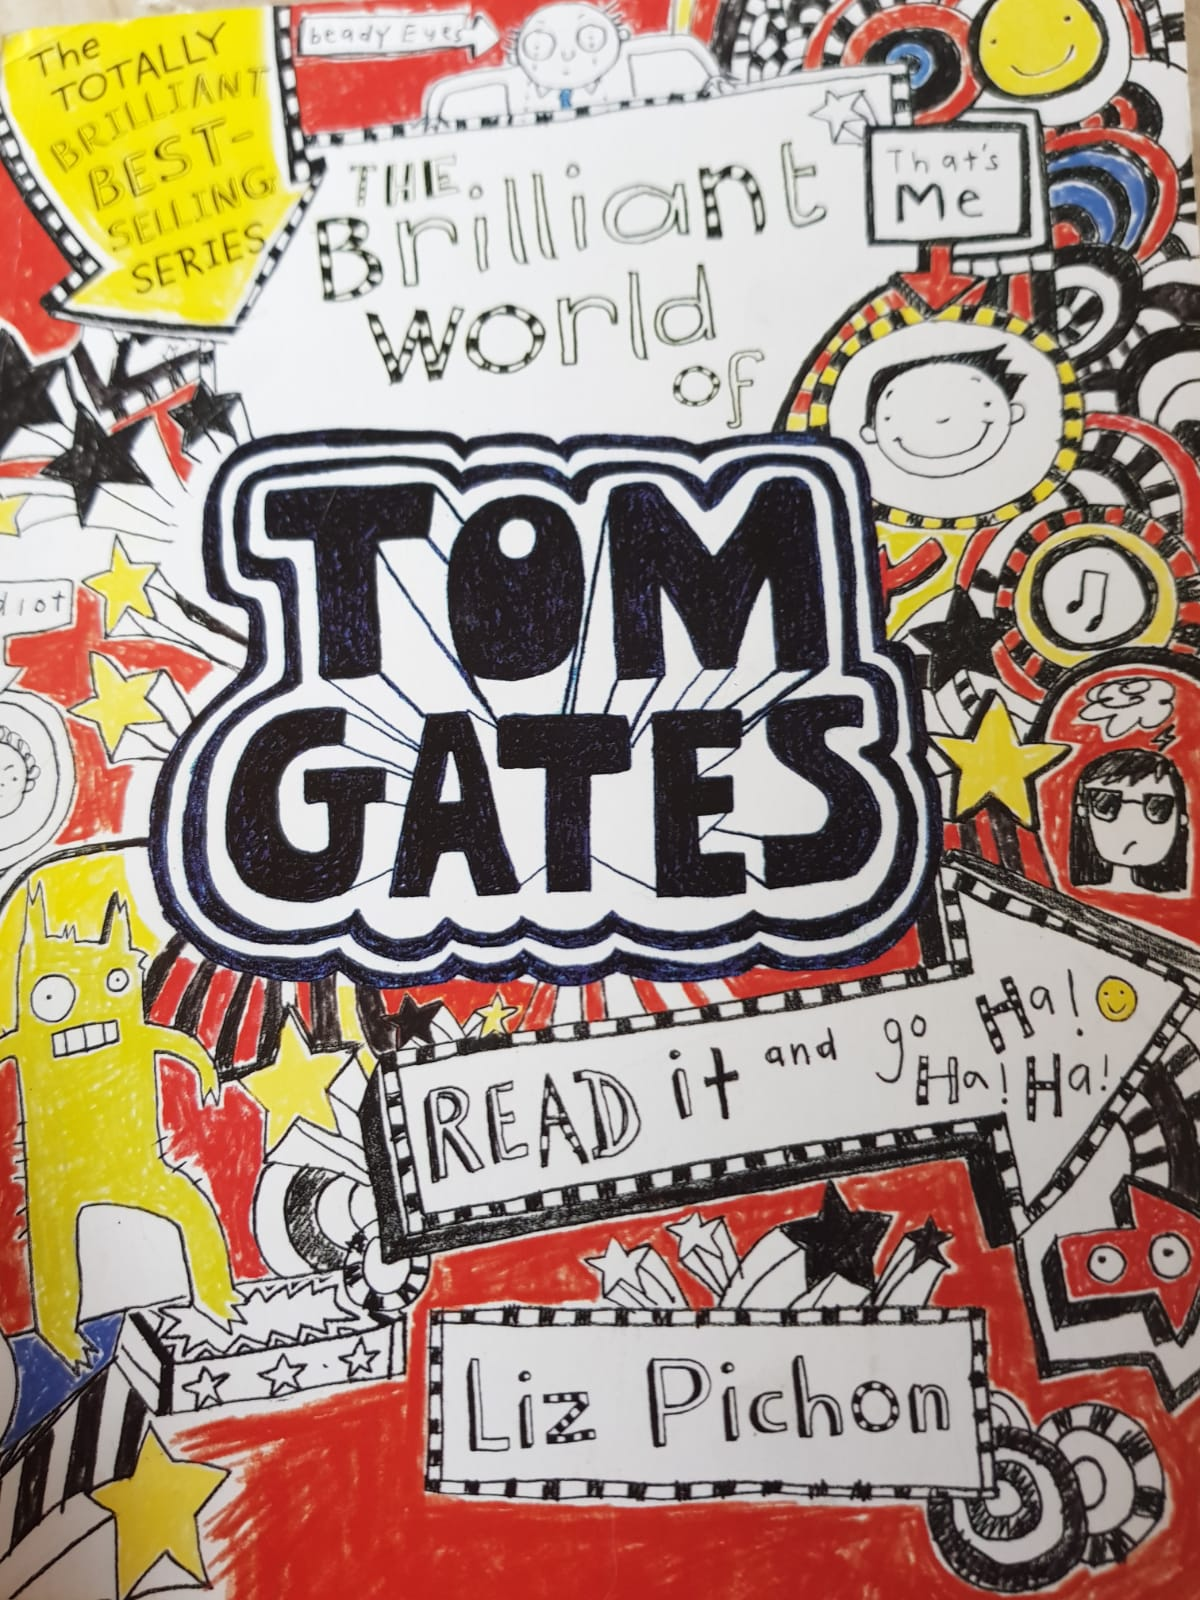 The brilliant world of Tom Gates!